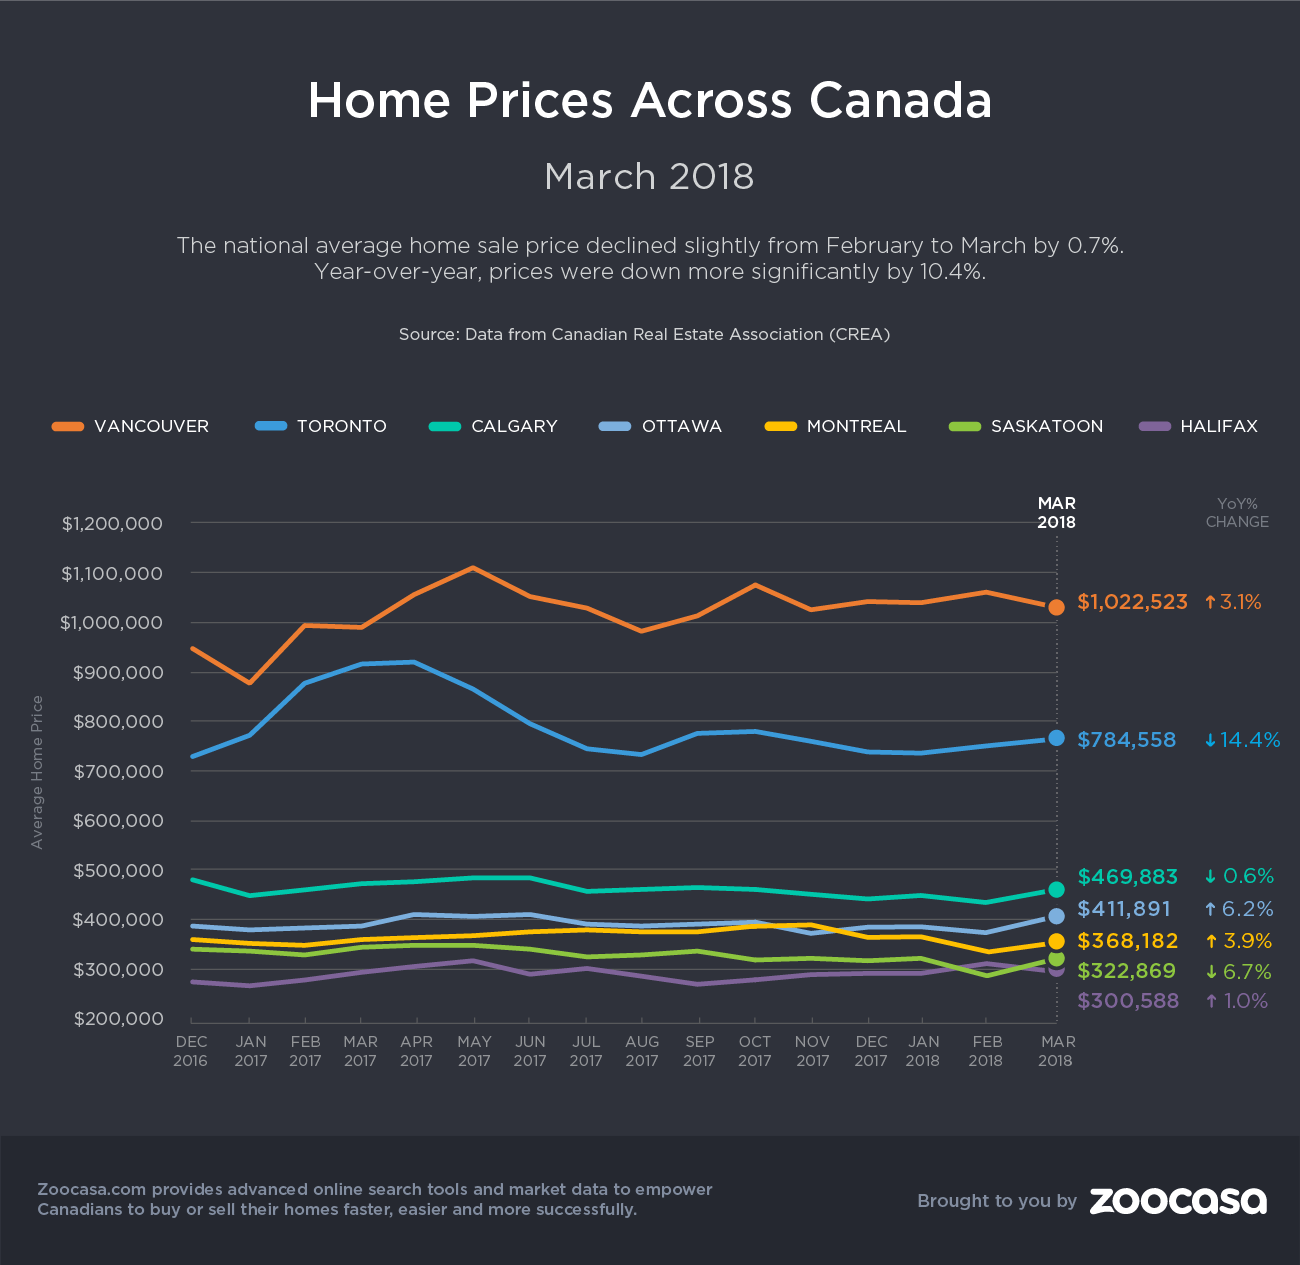 canada-home-prices-march-2018-zoocasa